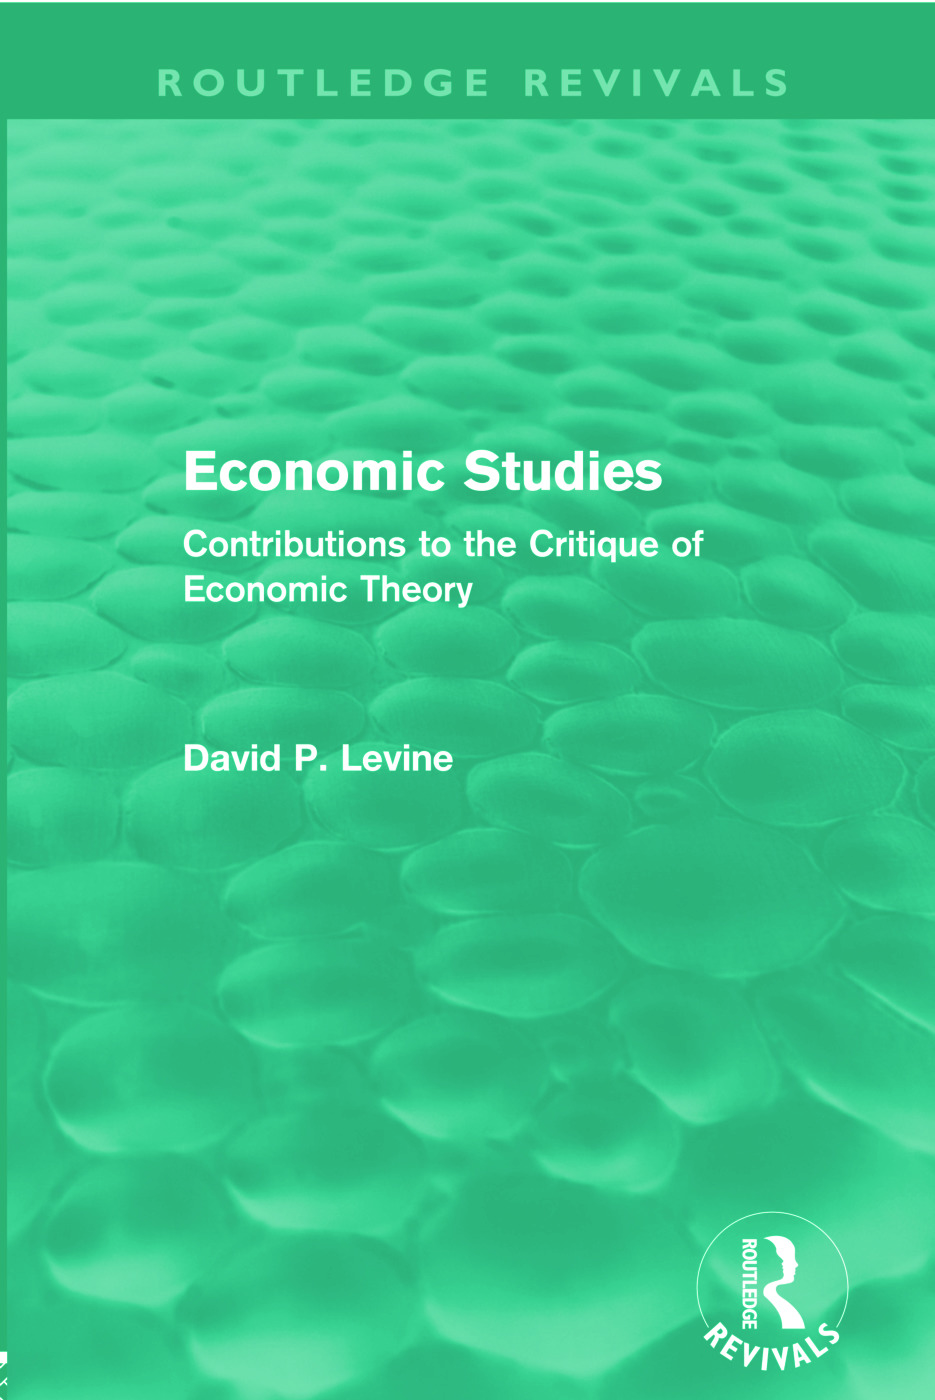 Economic Studies (Routledge Revivals): Contributions to the Critique of Economic Theory (Paperback) book cover